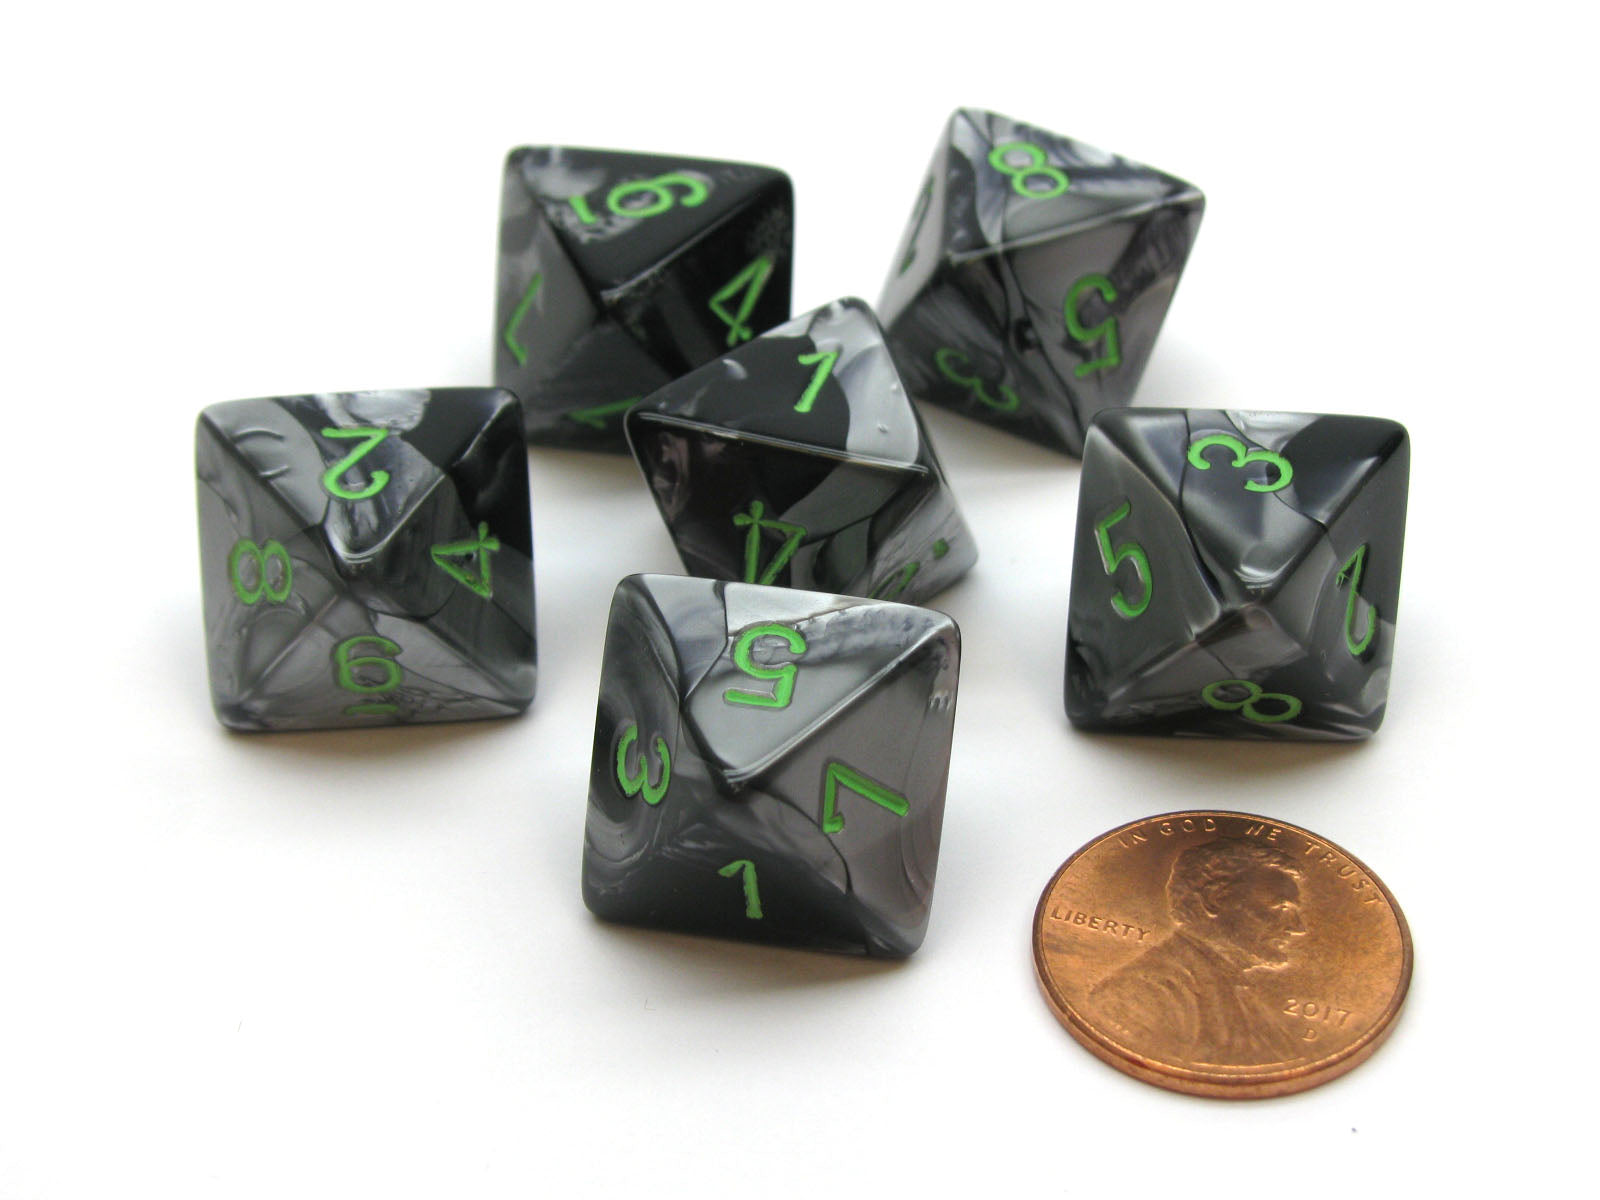 Gemini 15mm 8 Sided D8 Chessex Dice, 6 Pieces - Black-Grey with Green